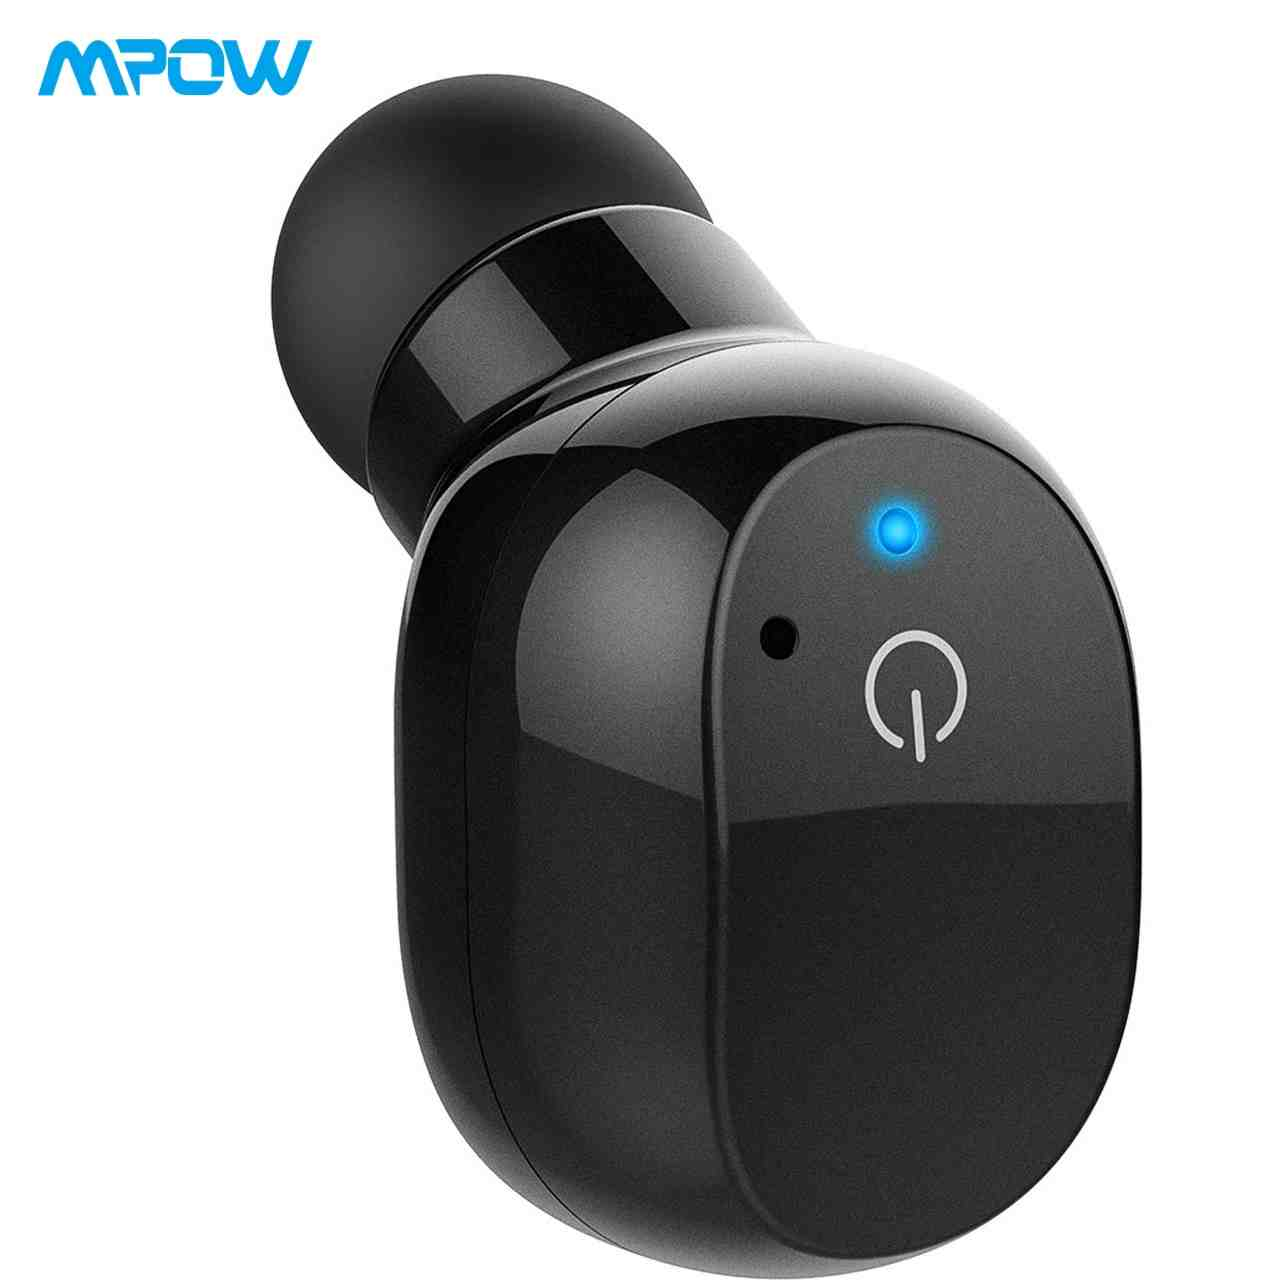 Mpow EM12 Bluetooth Earpiece, 6-Hr Playtime Touch Control Wireless Headphones, V4.2 Bluetooth Headset with Noise Reduction Microphone, Mini Bluetooth Earbud for Cell Phone (One Pcs, Two Chargers)